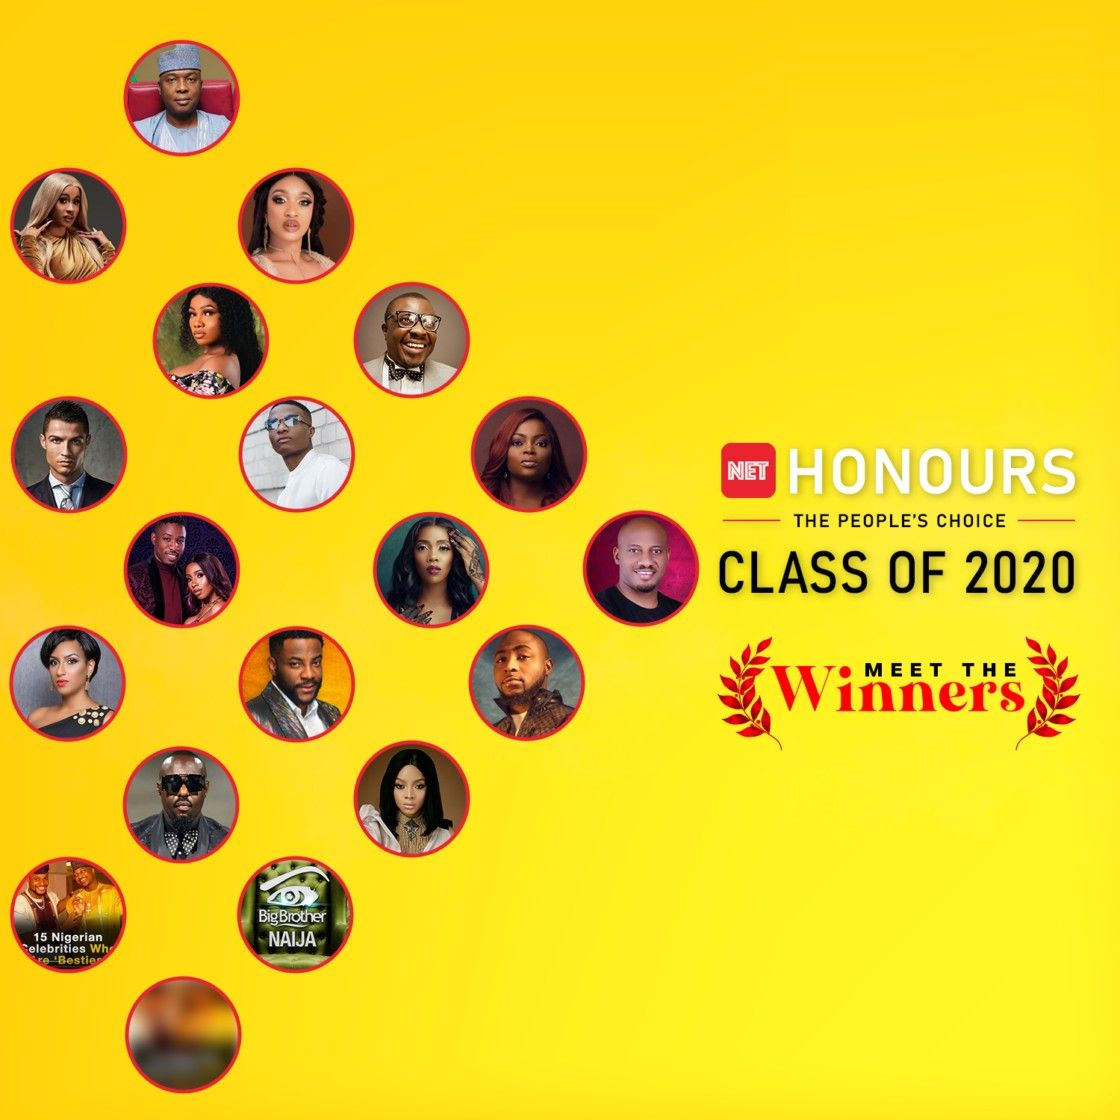 NET HONOURS 2020 See the Full List of The Winners in 2020